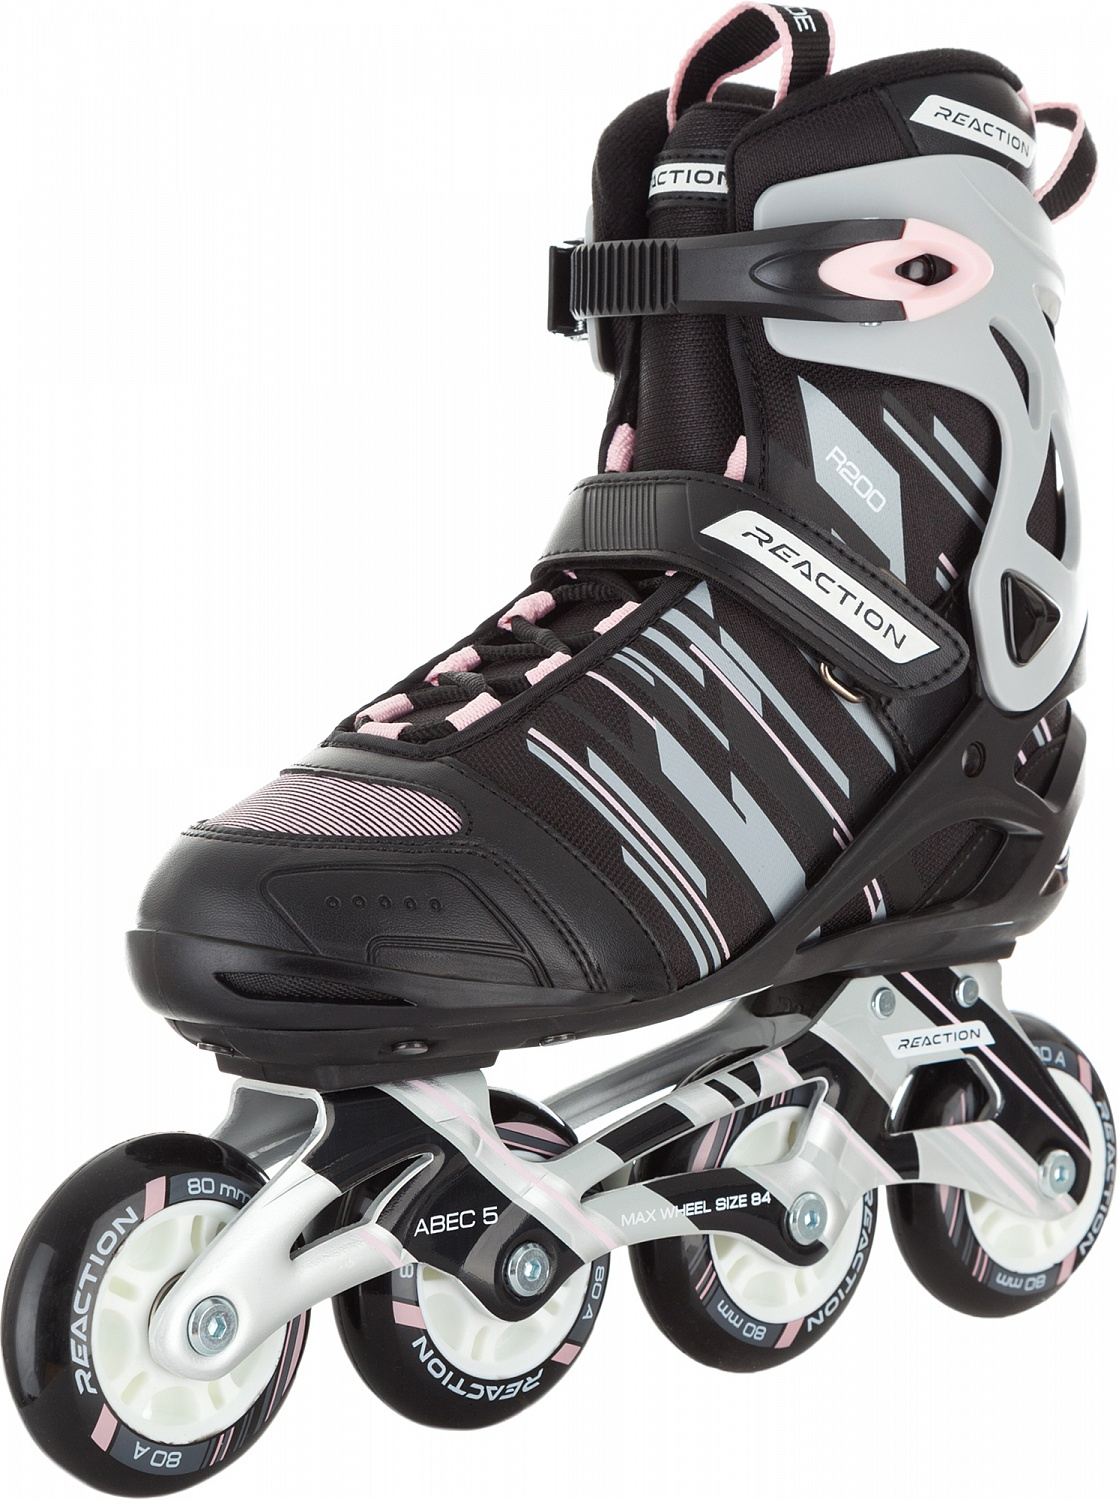 Коньки роликовые женские Reaction 208 W Women's Inline Skates, цвет: серый, розовый. Размер: 42 professionales road show rx4 roller skates four wheel skates inline skates ice hockey skates for adulto